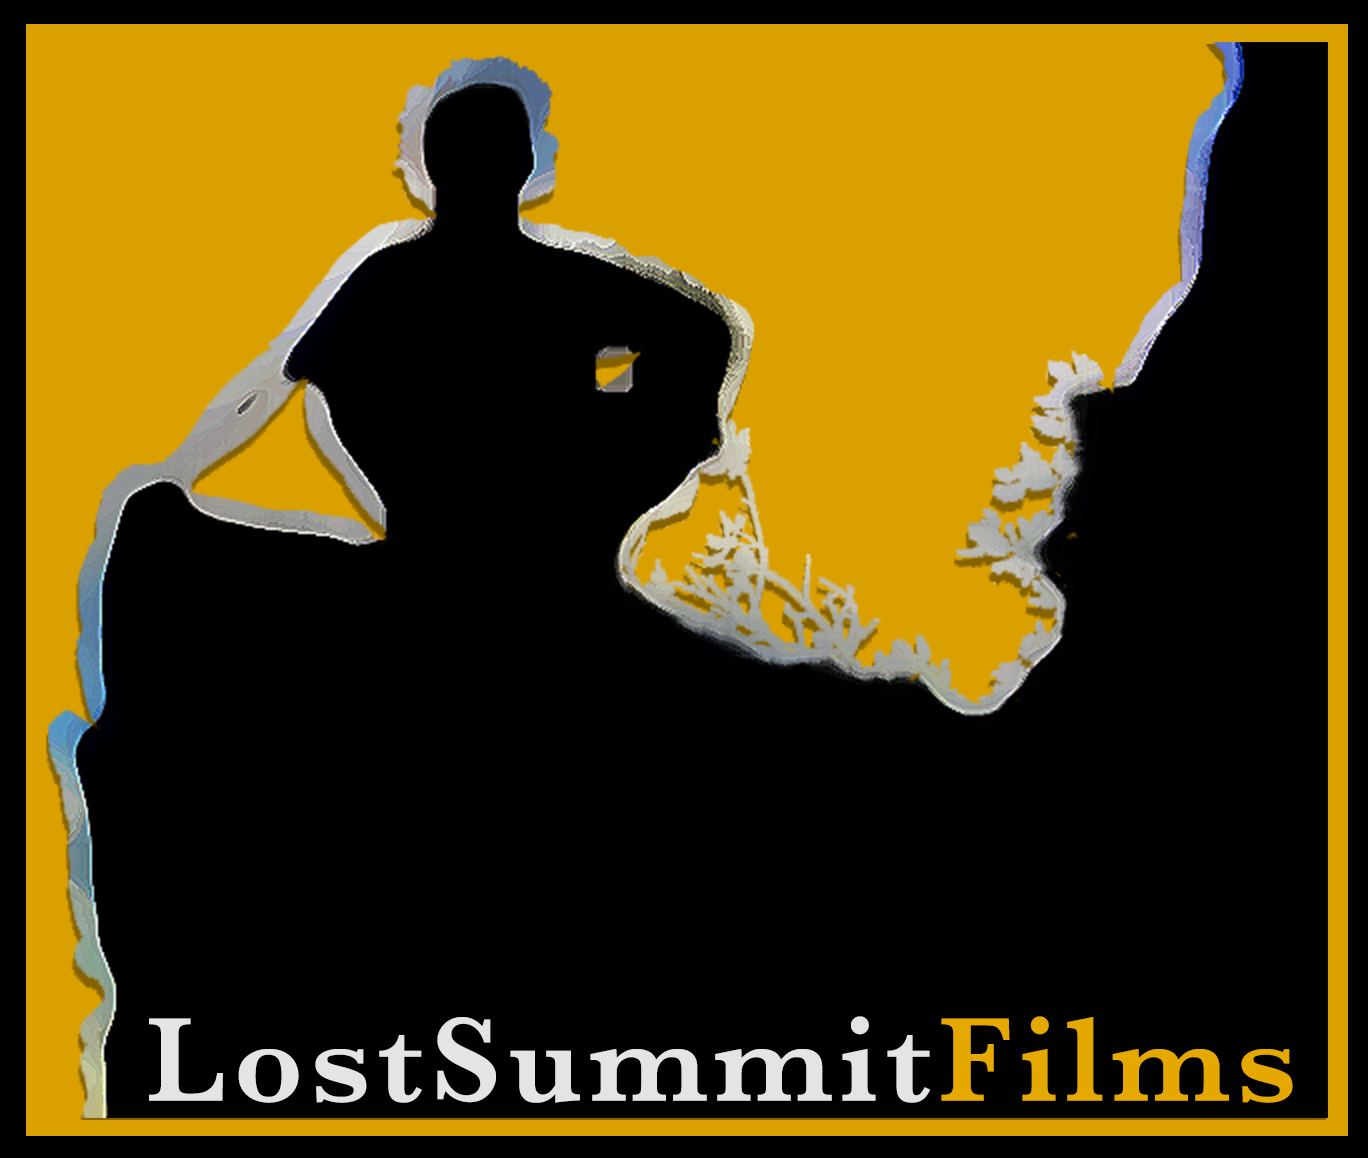 Lost Summit Films